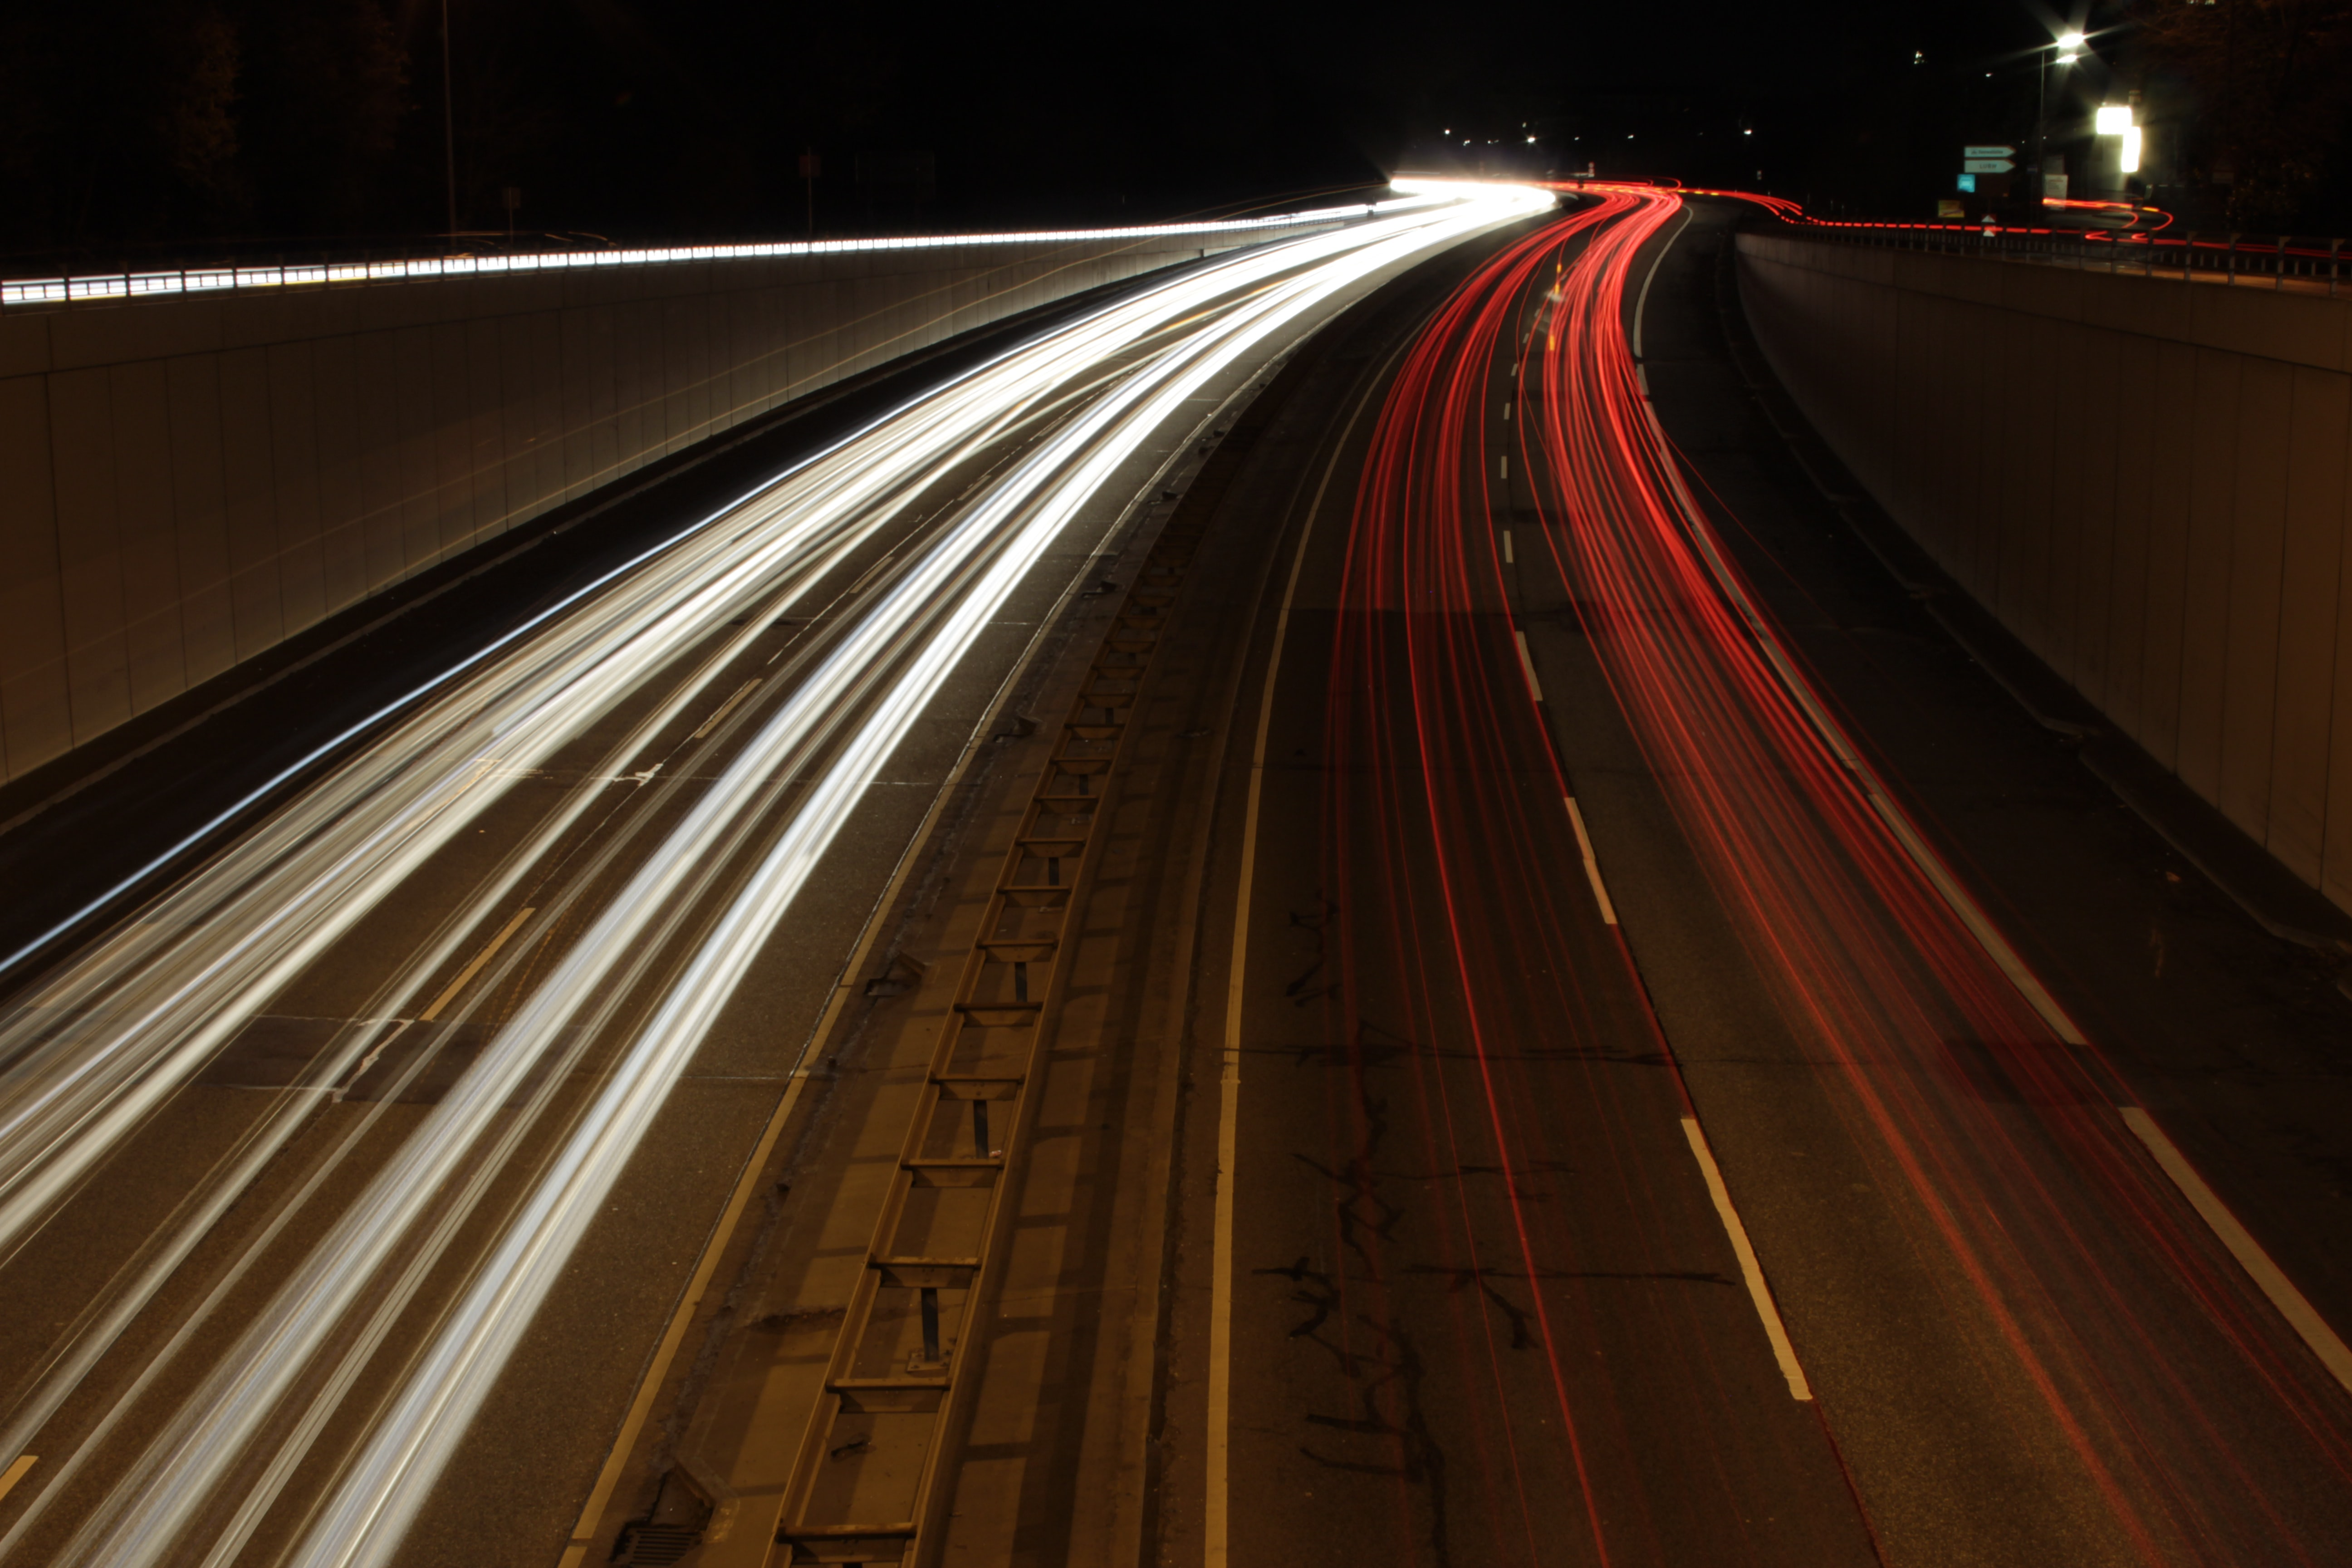 White and red light trails on a two-lane highway at night